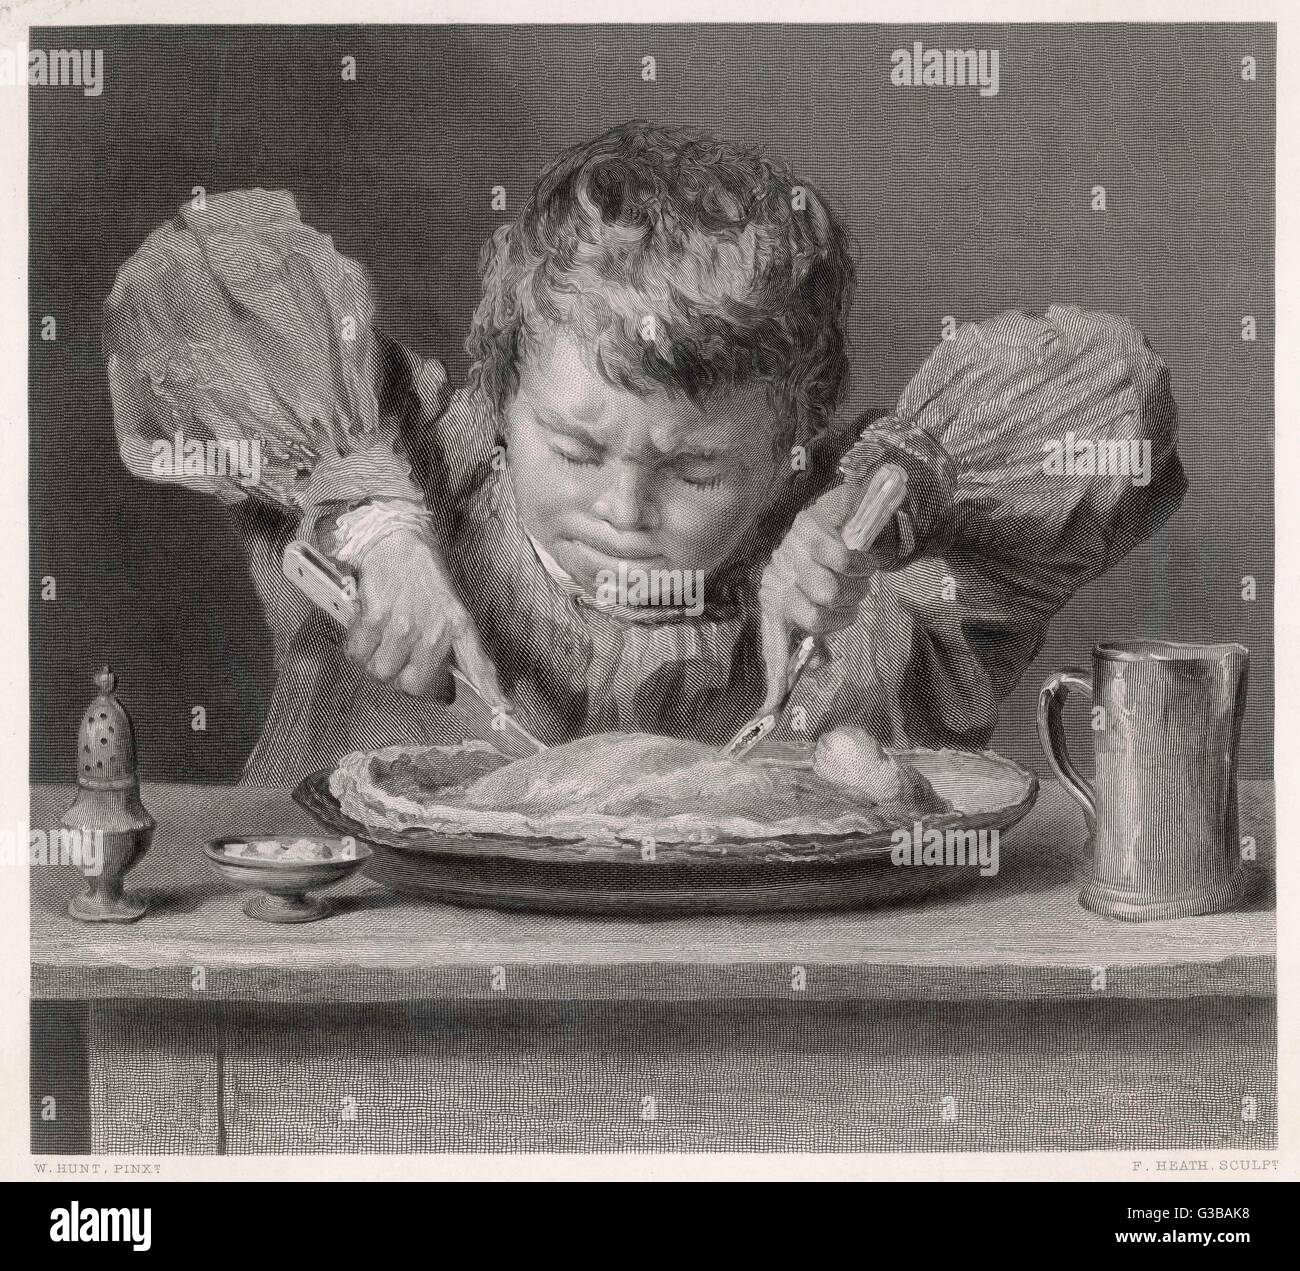 A plump boy puts all his  strength into eating a pie.         Date: circa 1850 - Stock Image